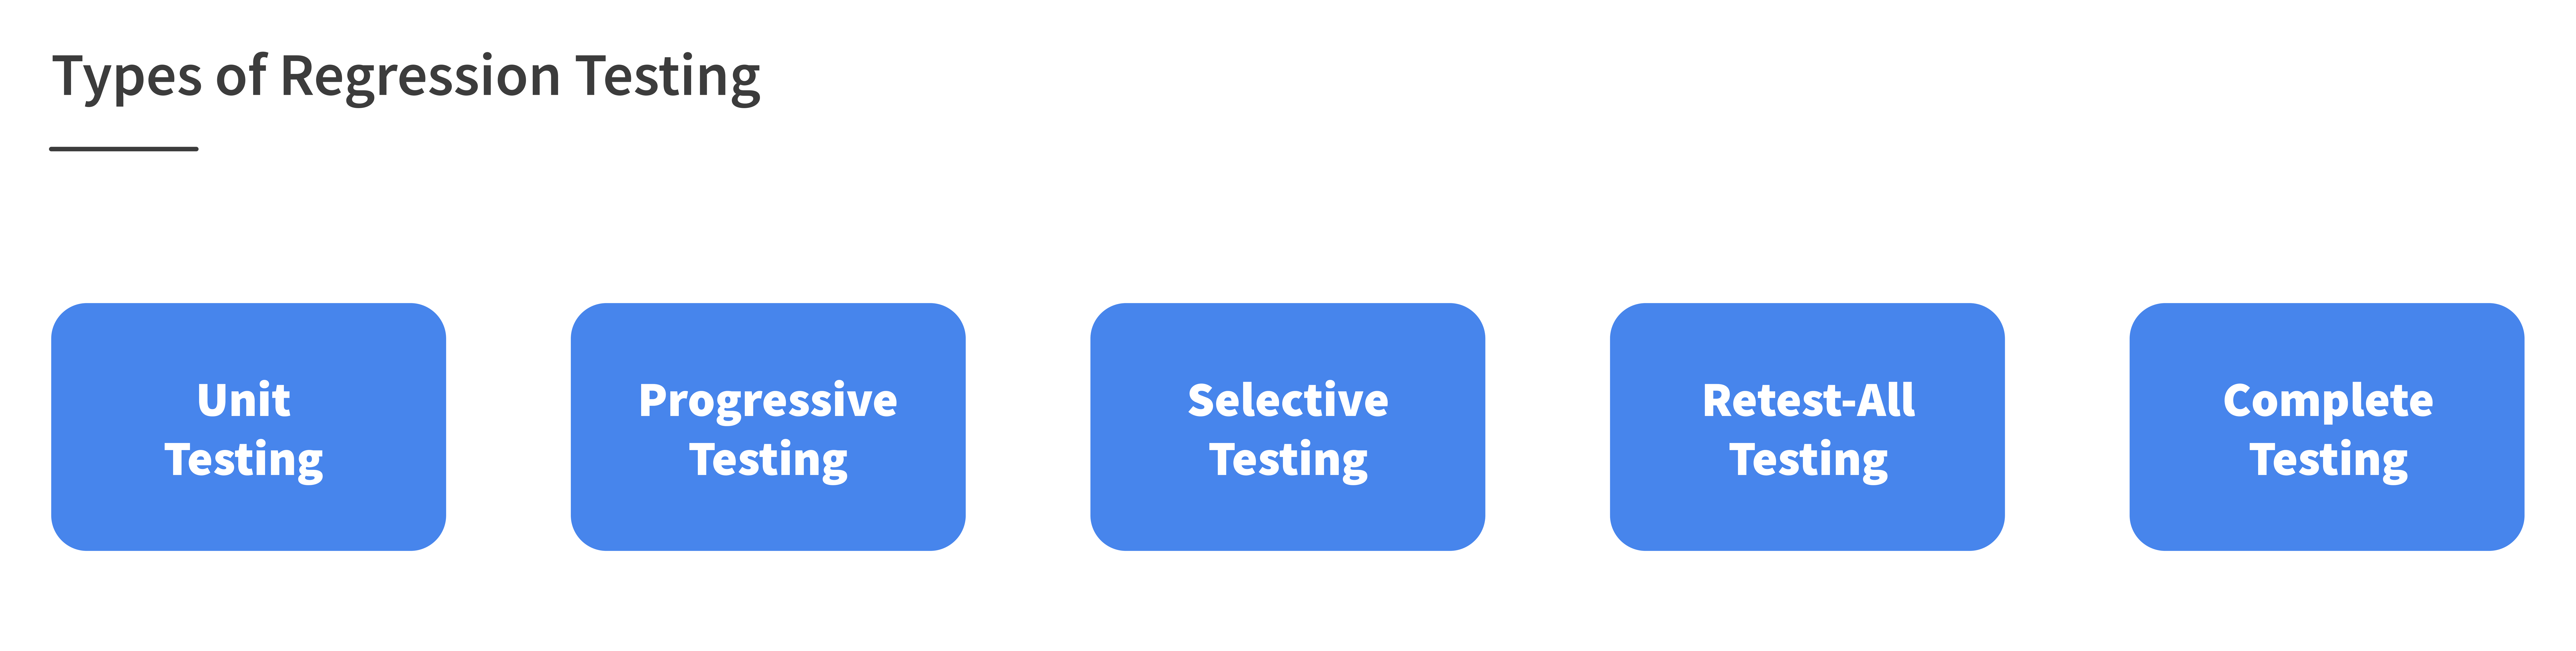 Types-of-Regression-Testing